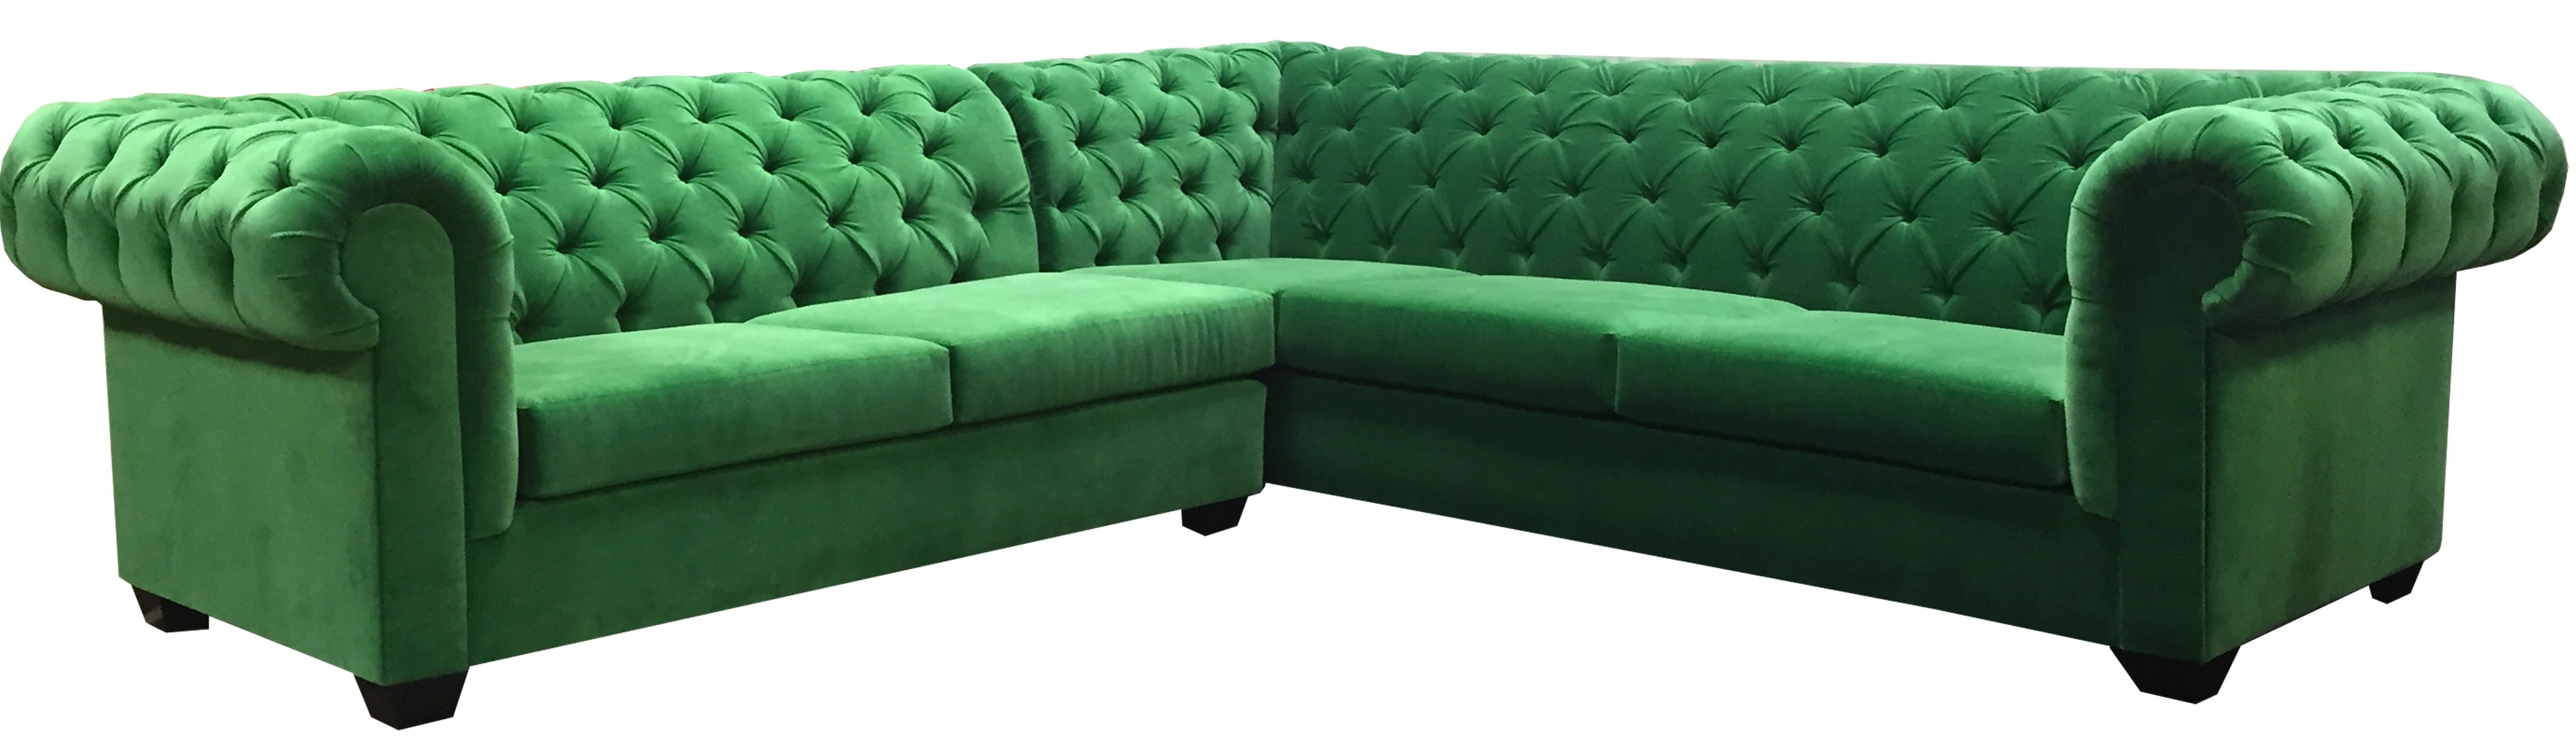 Green Sectional Sofa Mint Hunter Olive Stock Photos Hd | Paramountsmart Regarding Green Sectional Sofas (View 8 of 10)